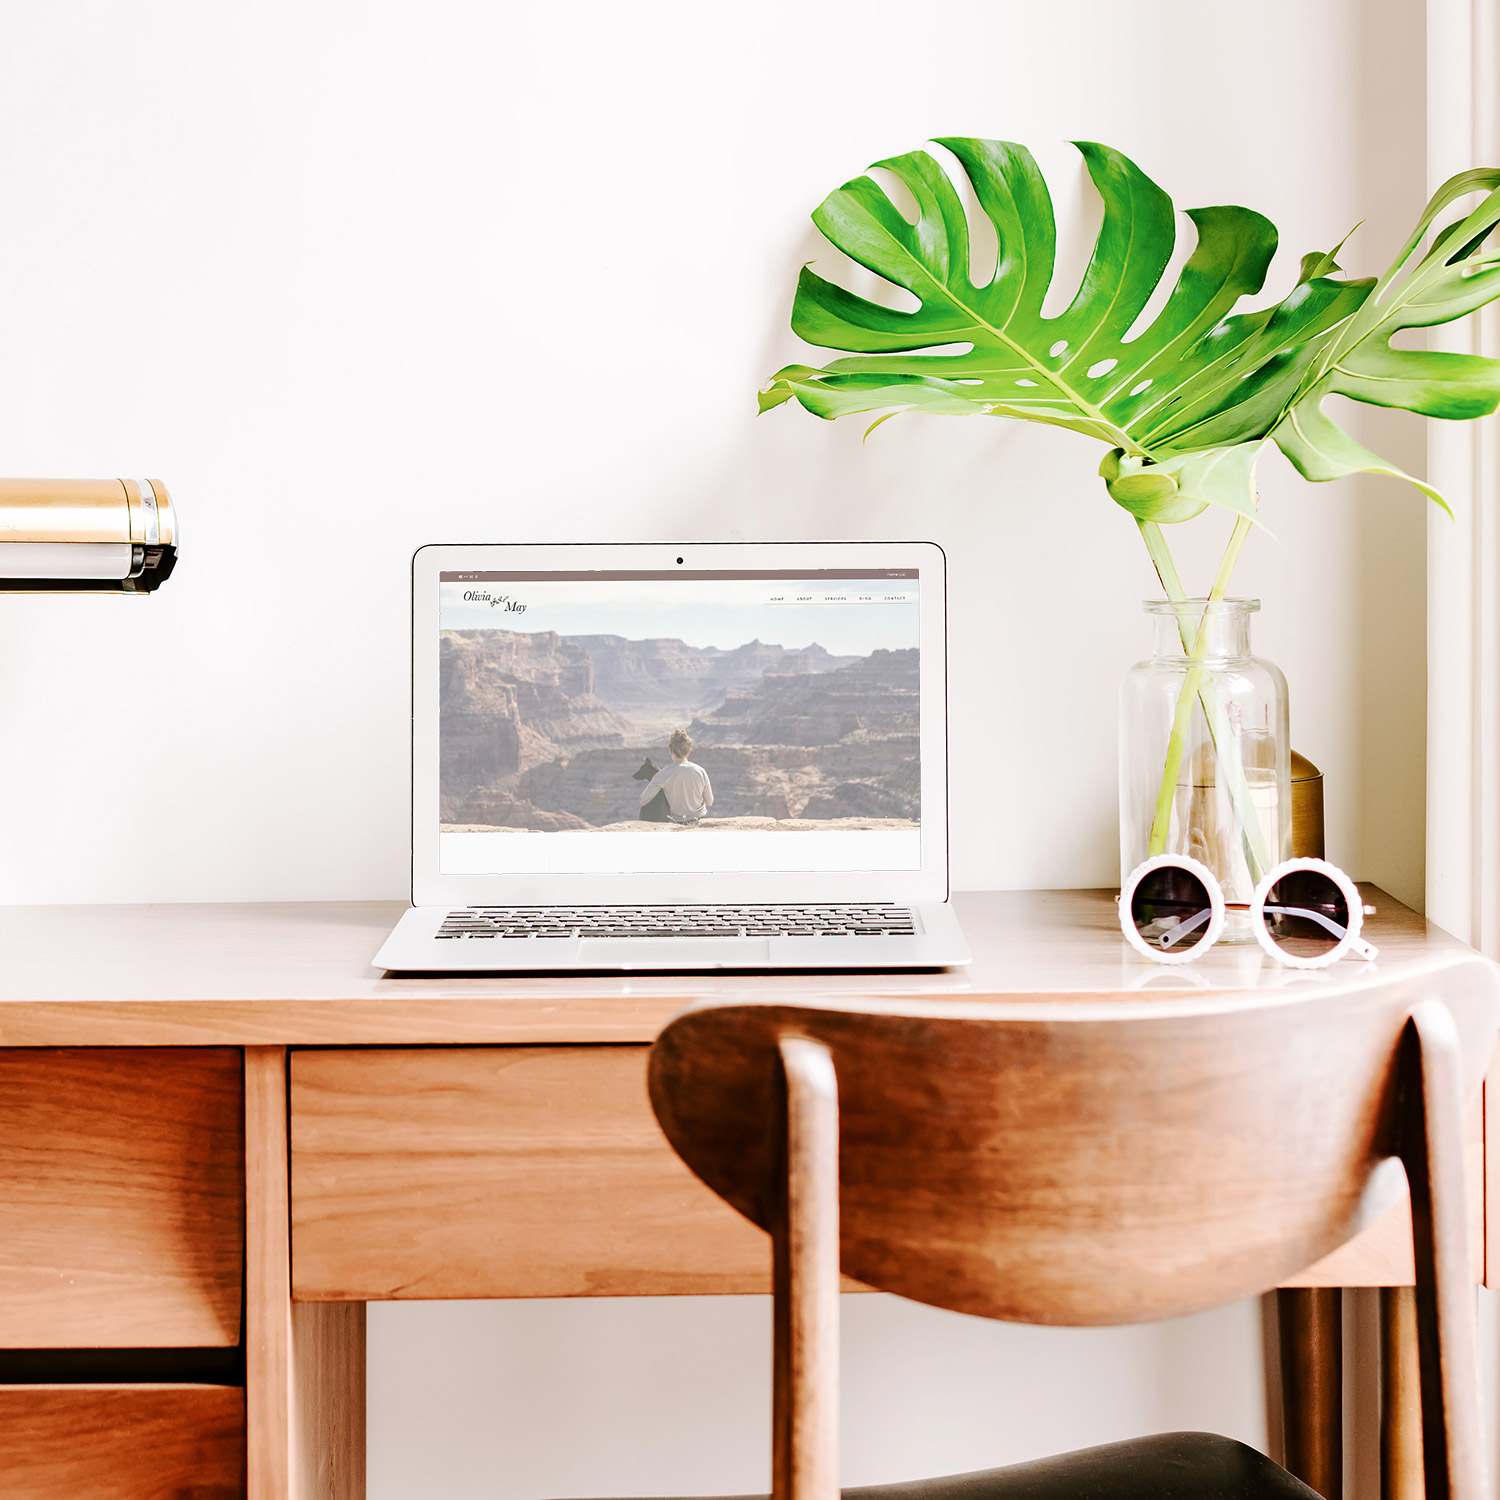 Squarespace power templates - the perfect hybrid between a custom site and a DIY site by Jodi Neufeld Design